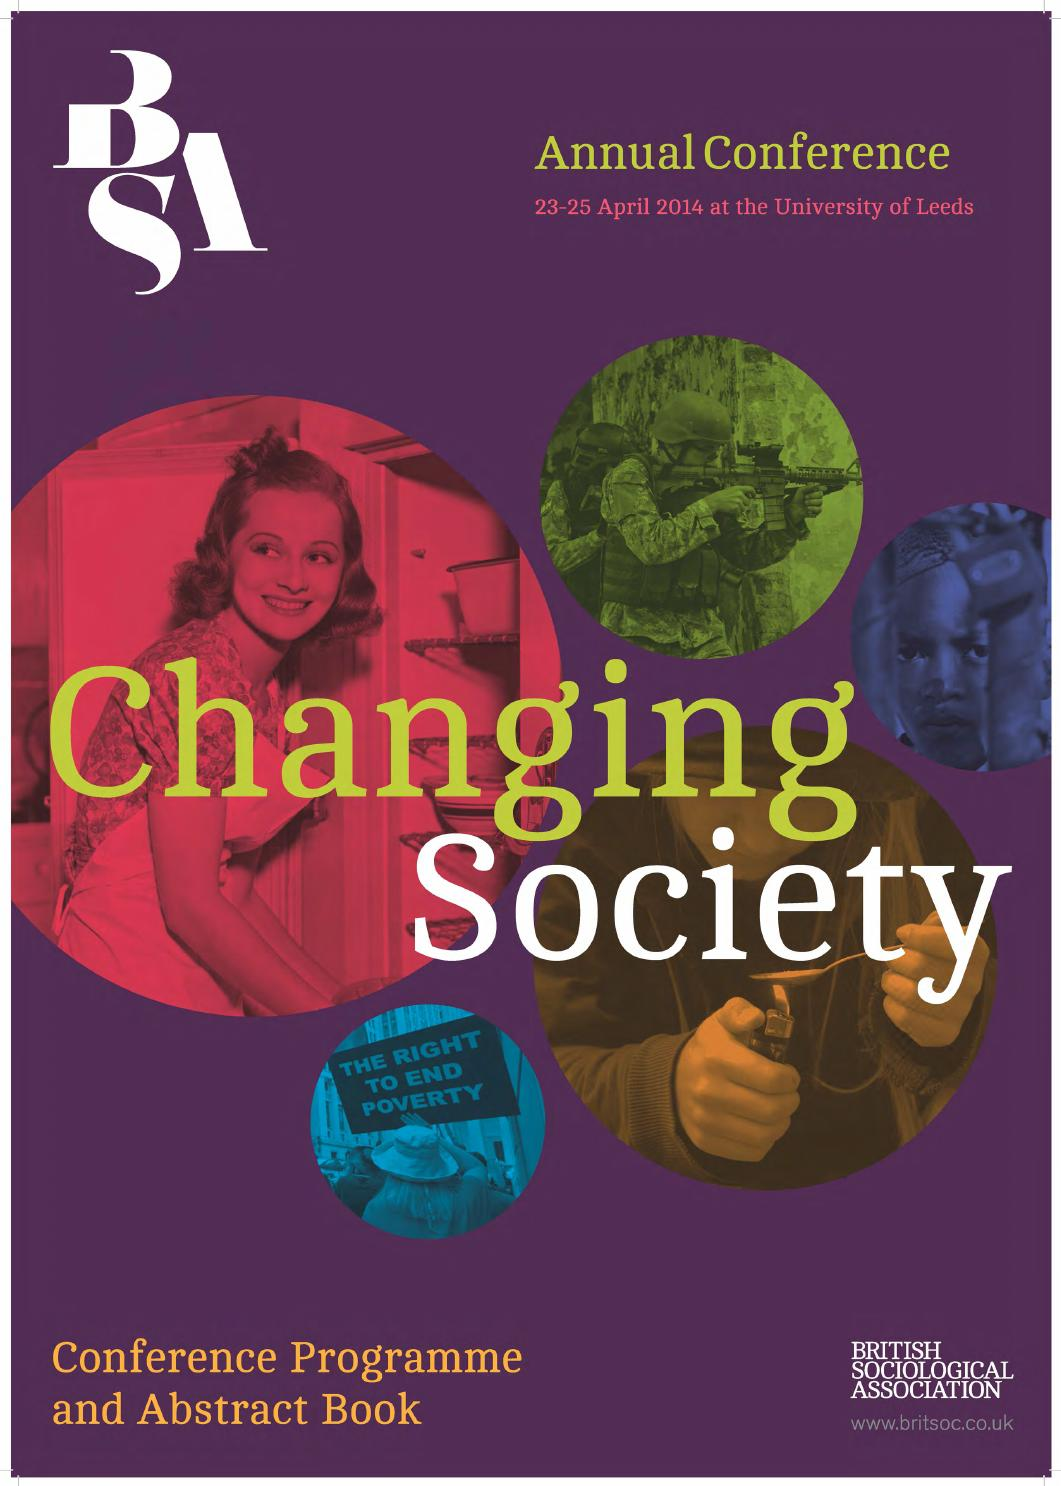 Specialty sociology: general humanitarian training plus knowledge about the society